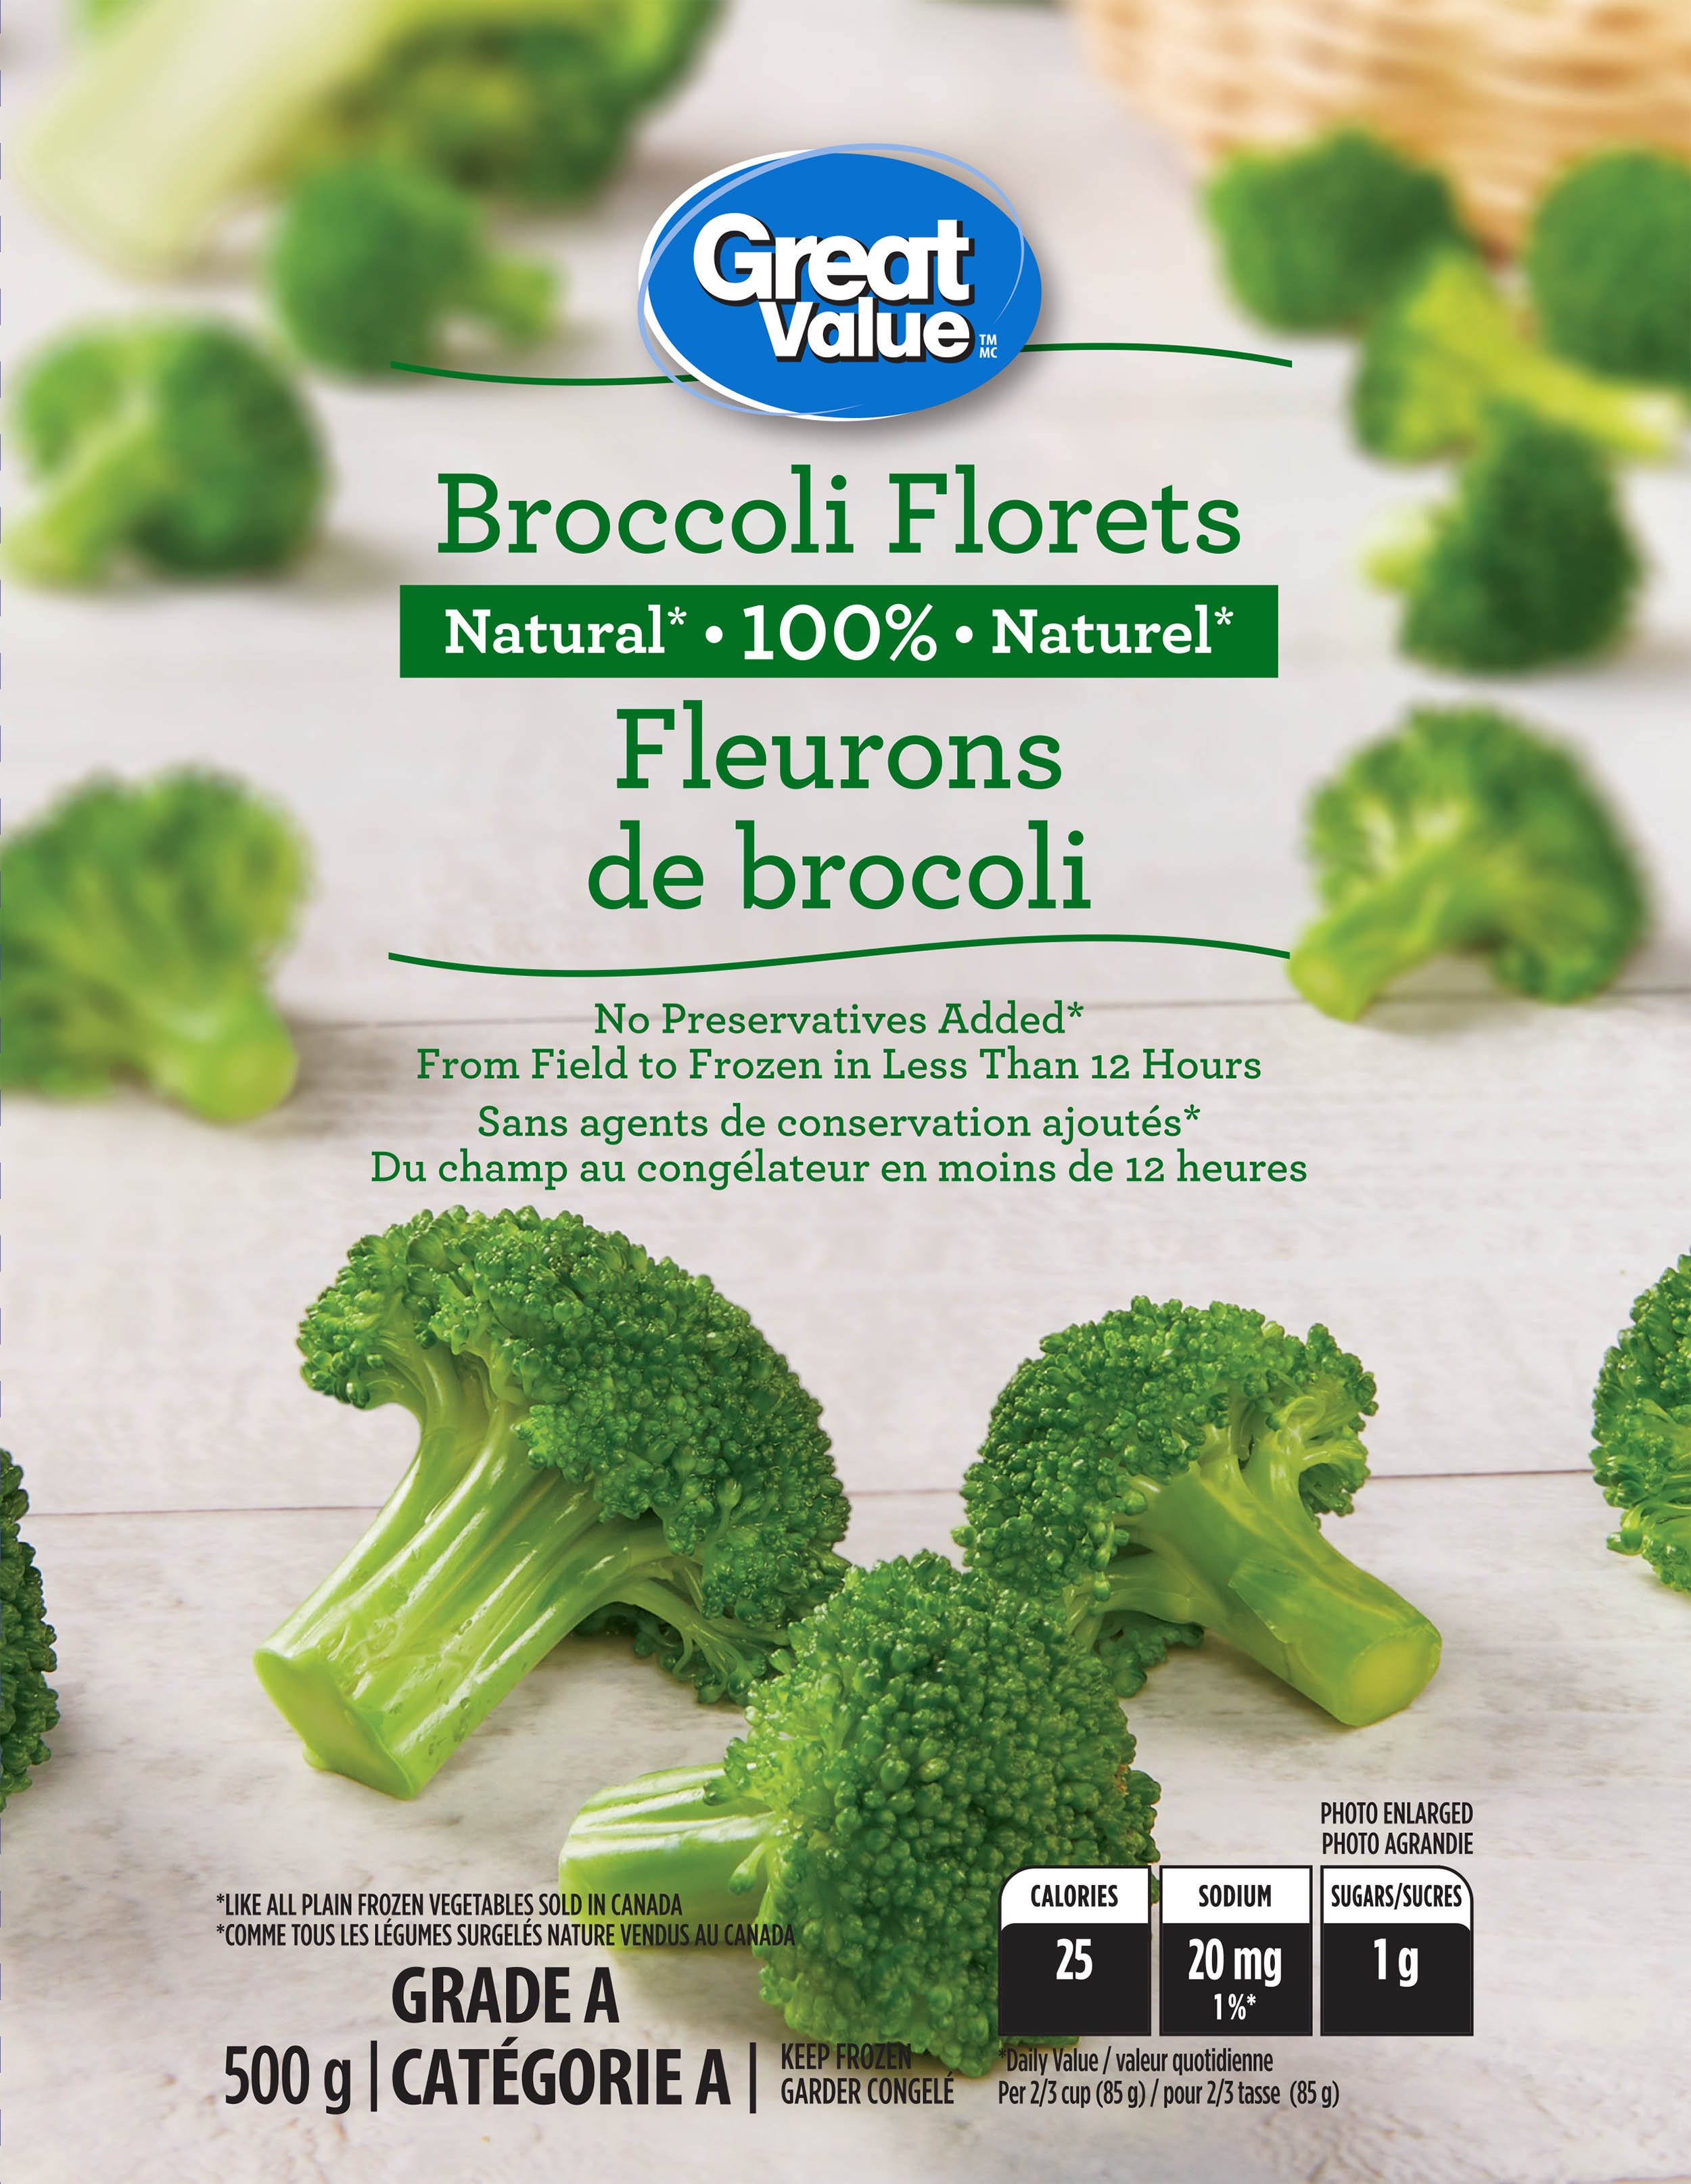 BroccoliFloretsFruveco500g_caFRU_bag_Final_LR-2